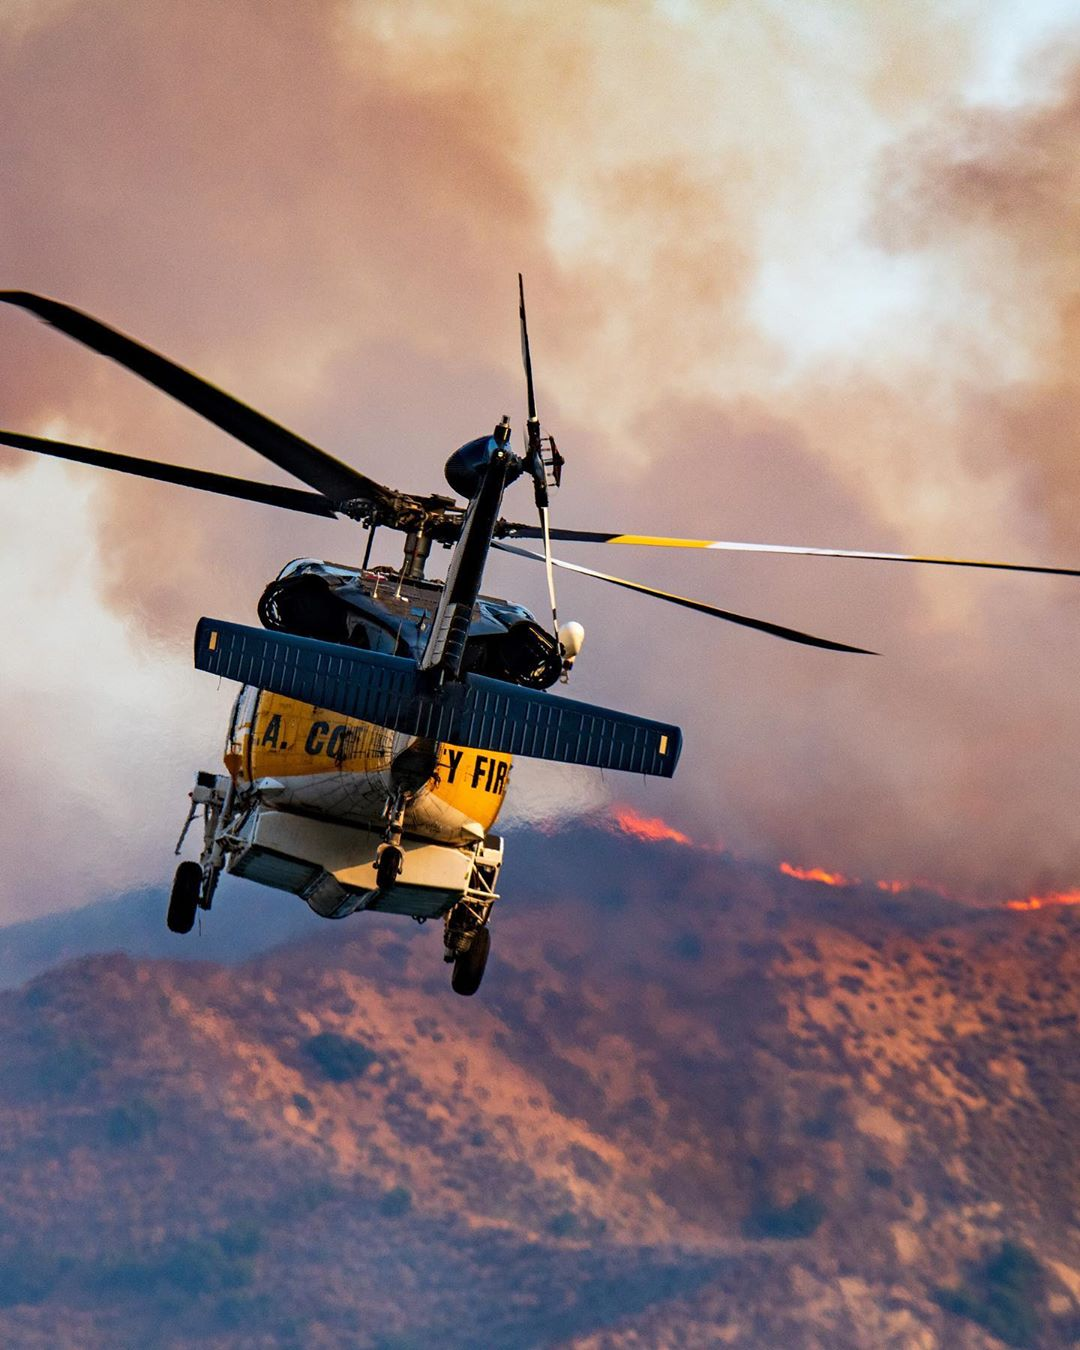 L.A. County Fire Air Operations Sikorsky S-70 Firehawk on its way to battle the Holser Fire in California. Photo submitted by Mike Gilbert (Instagram user @therealmikegilbert) by tagging @verticalmag